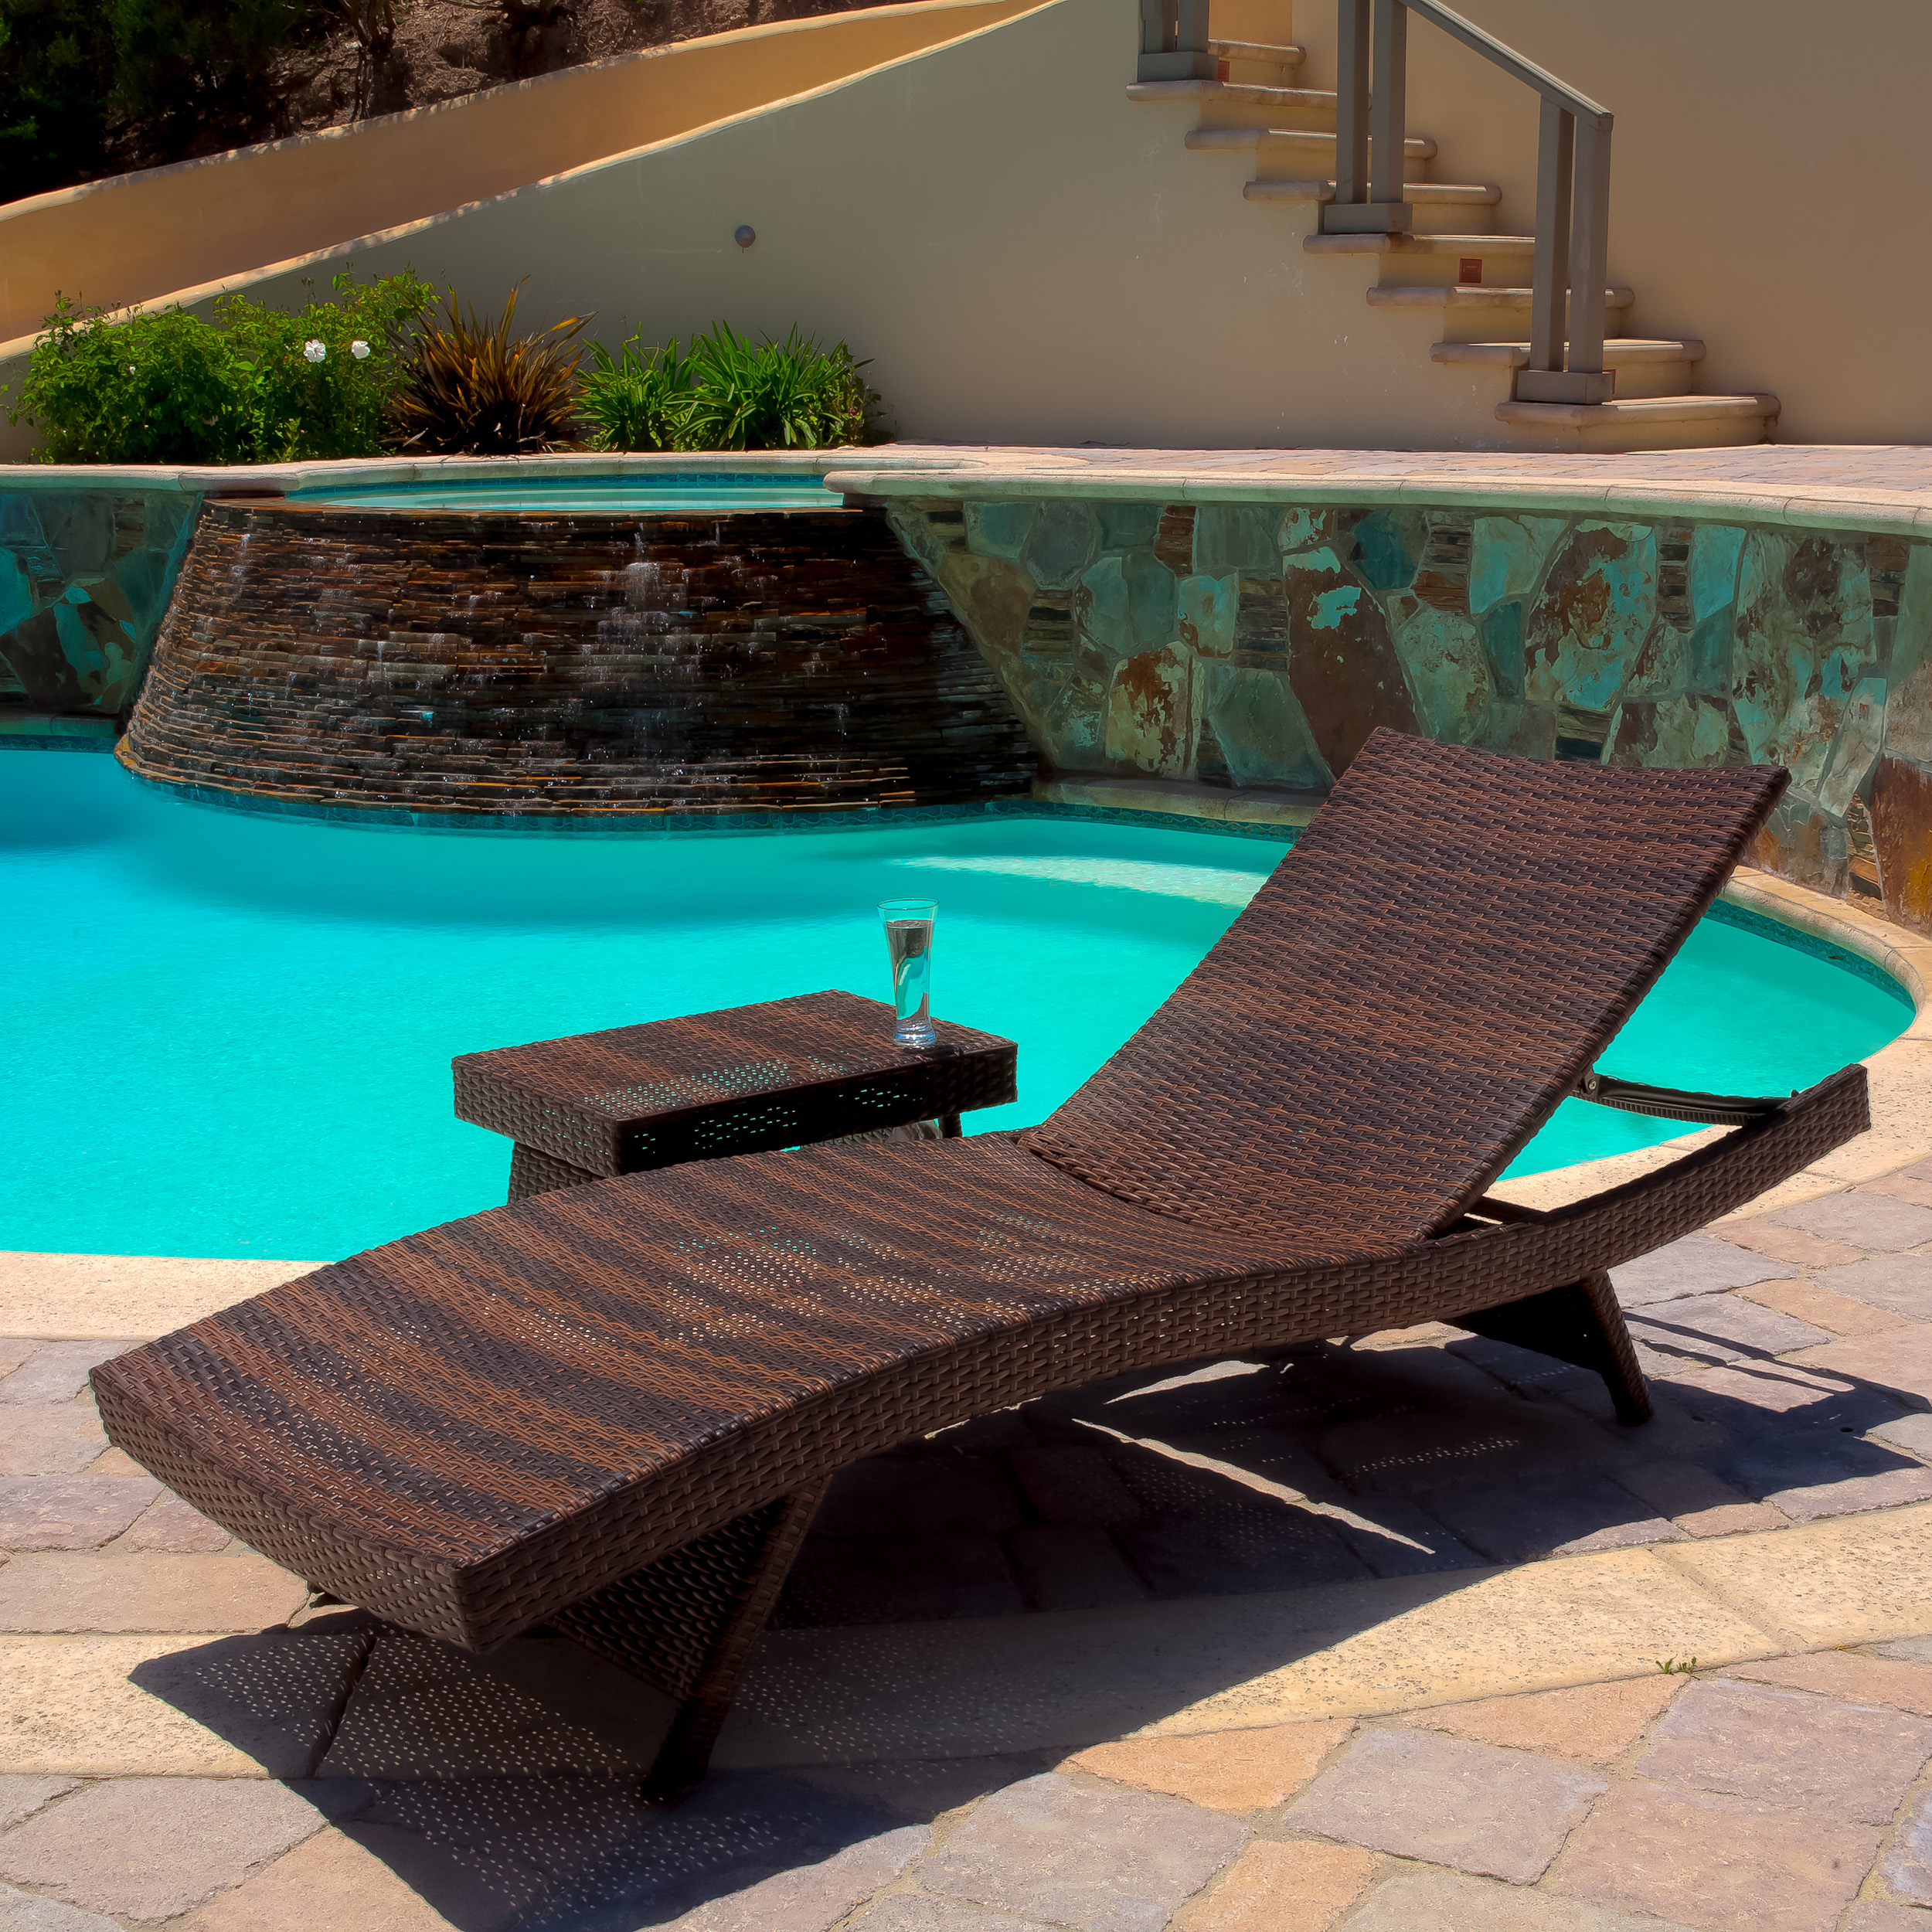 Raleigh Outdoor Wicker Chaise Lounge and Table Set